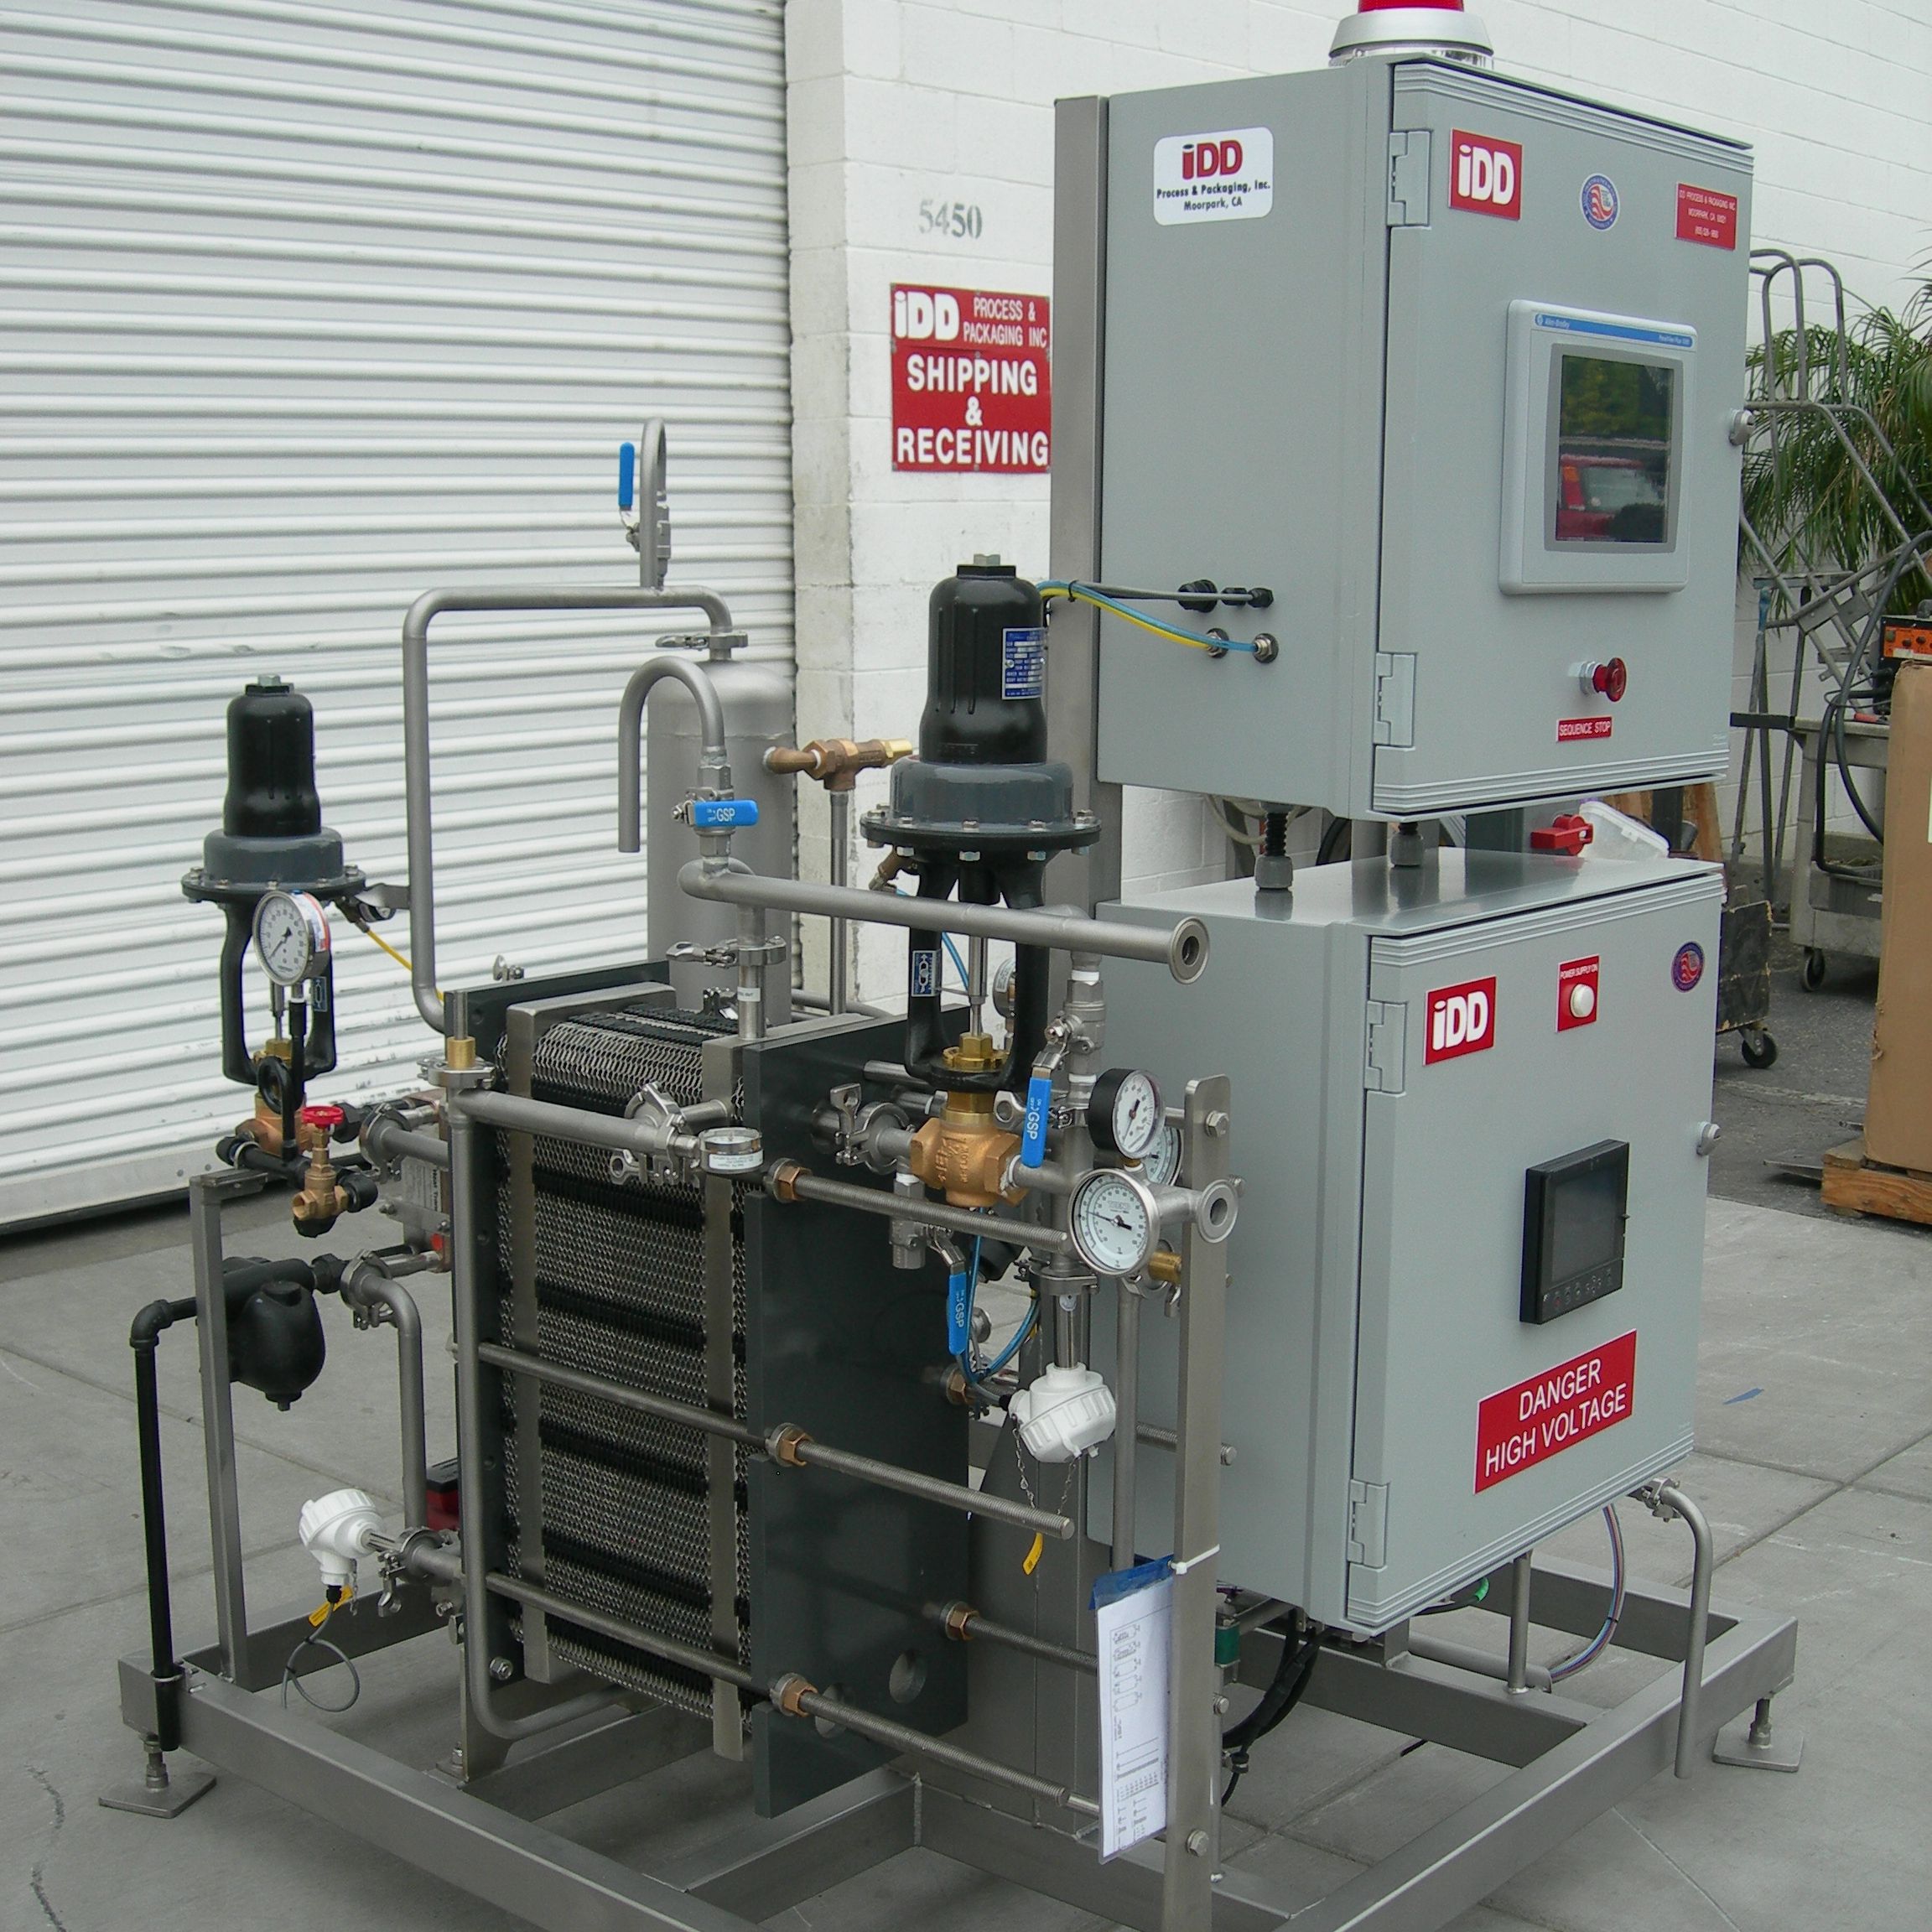 FP1-CB - Up to 15 hL/hrOffering the same capacity as the FP1, the CB model saves initial investment and floor space by not including the product or water tanks. The FP1-CB opens up the benefits of pasteurization to even the smallest beverage producers.